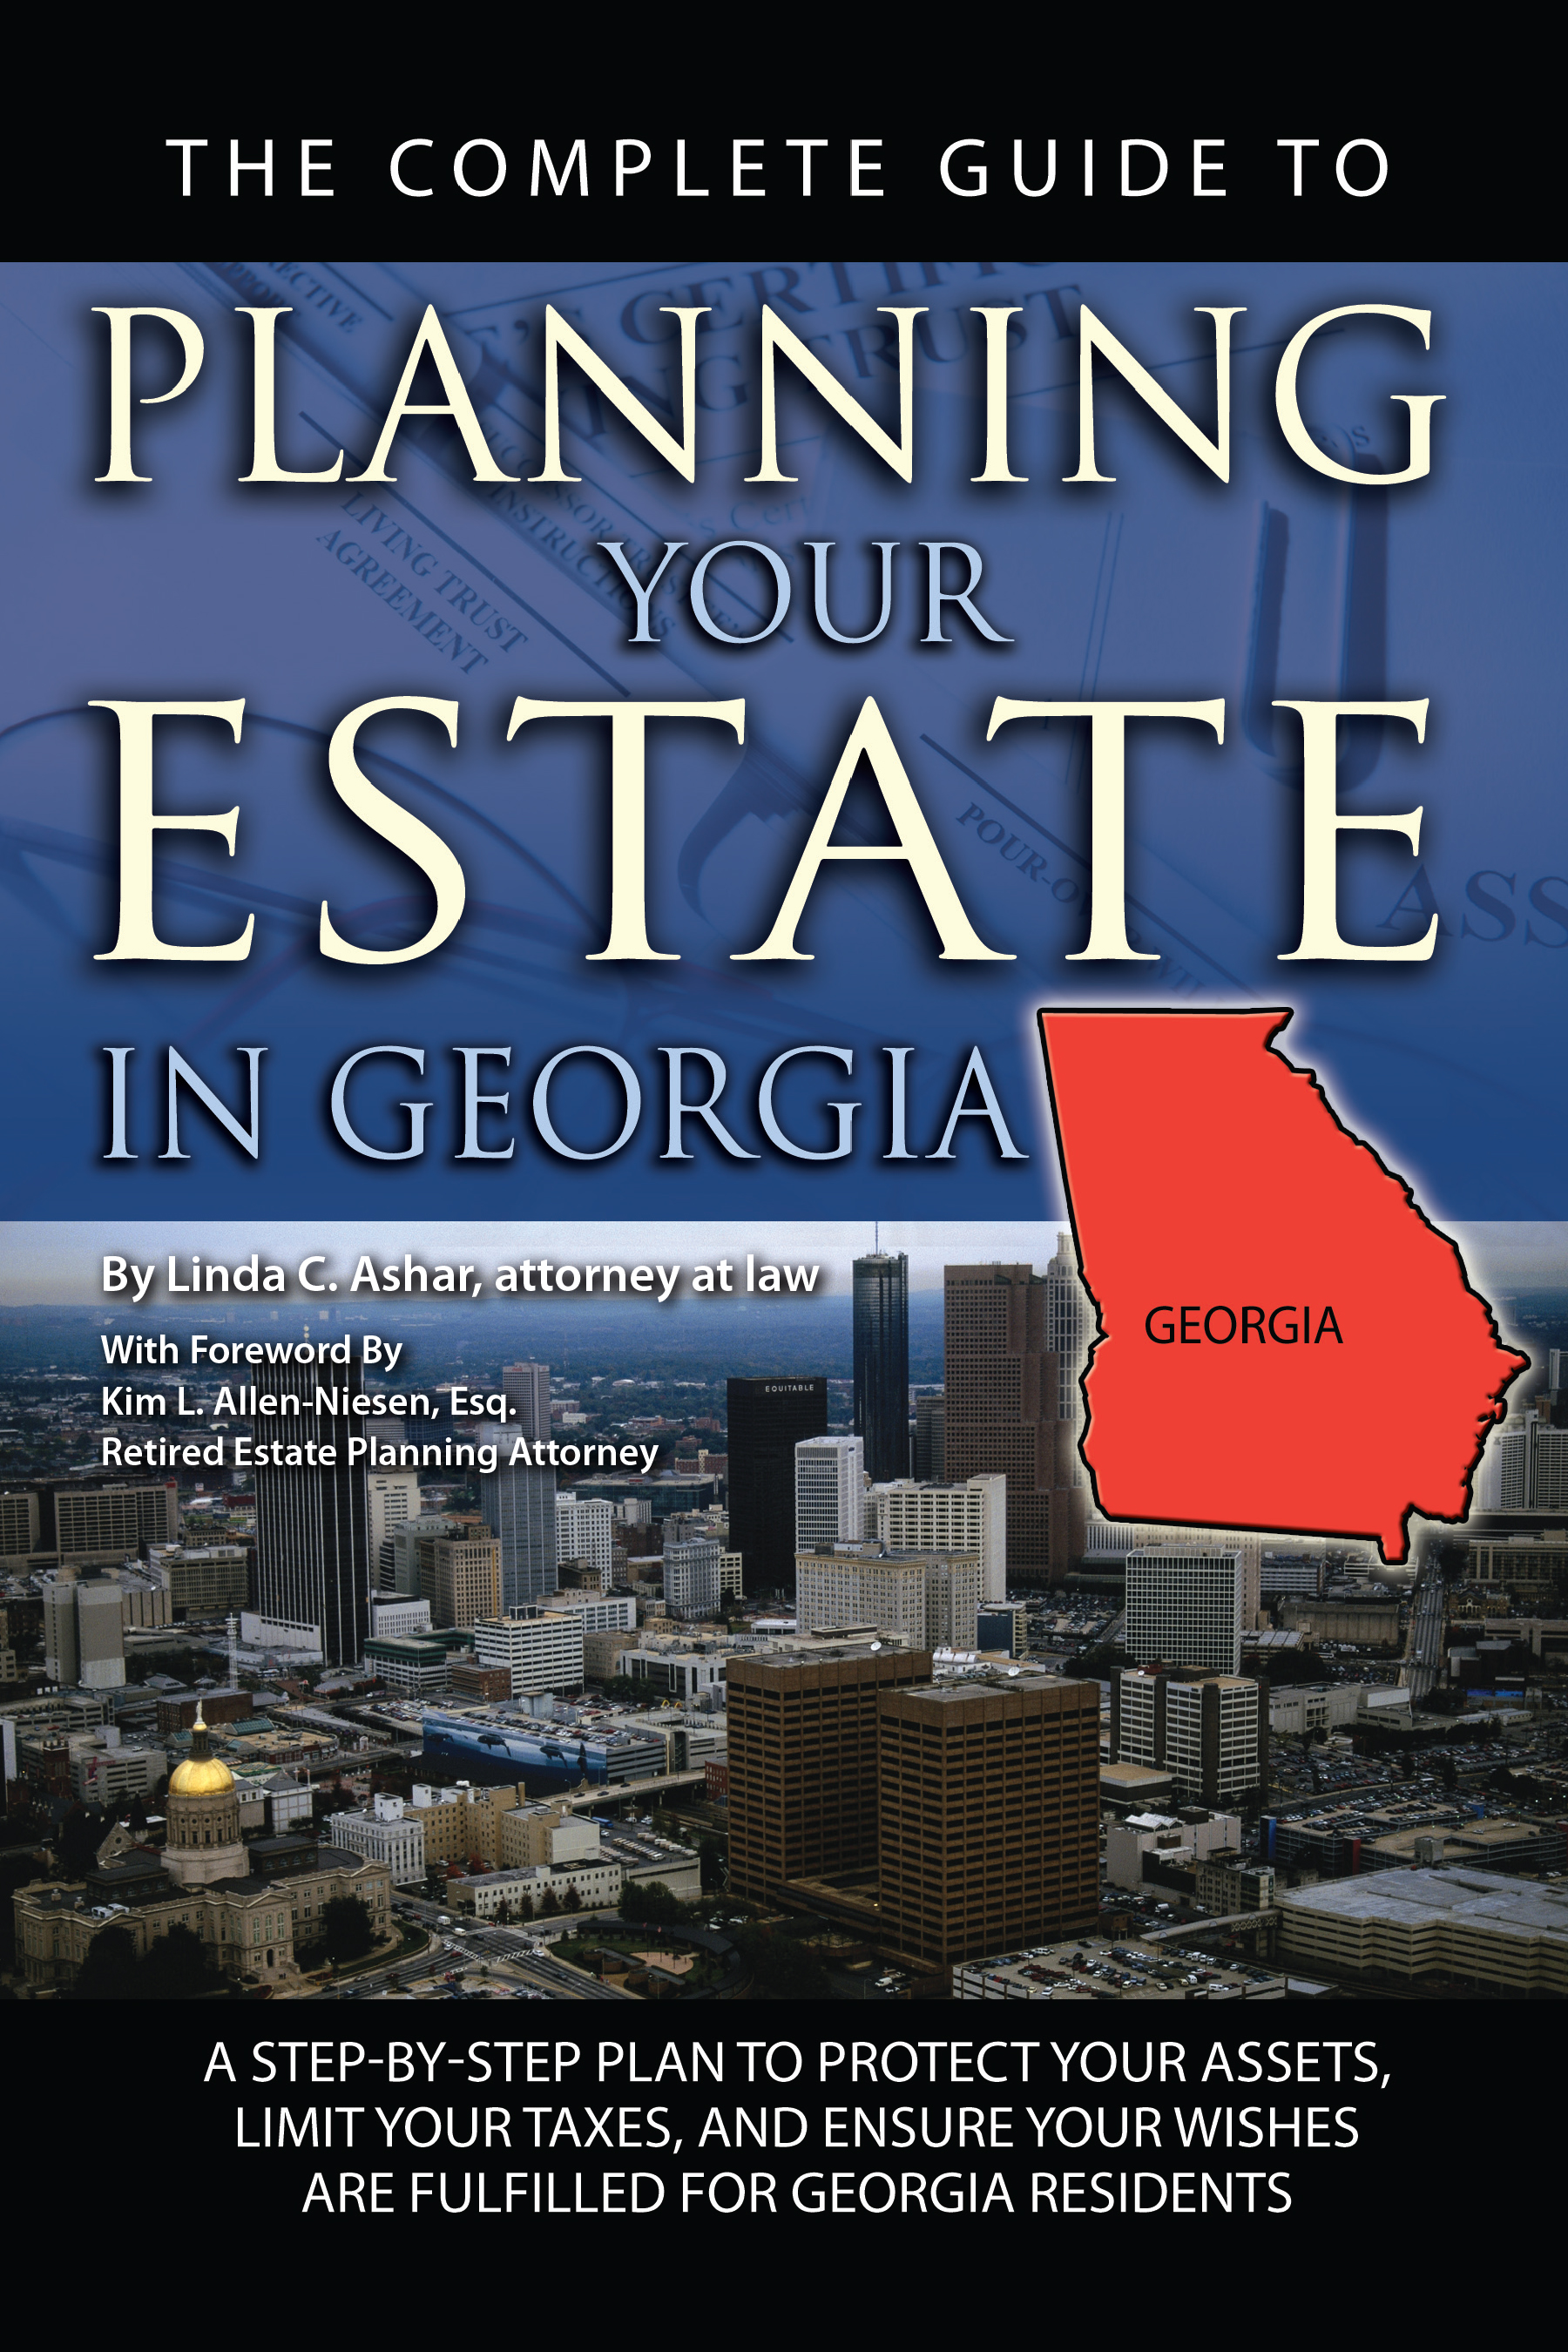 The Complete Guide to Planning Your Estate In Georgia  A Step-By-Step Plan to Protect Your Assets, Limit Your Taxes, and Ensure Your Wishes Are Fulfil